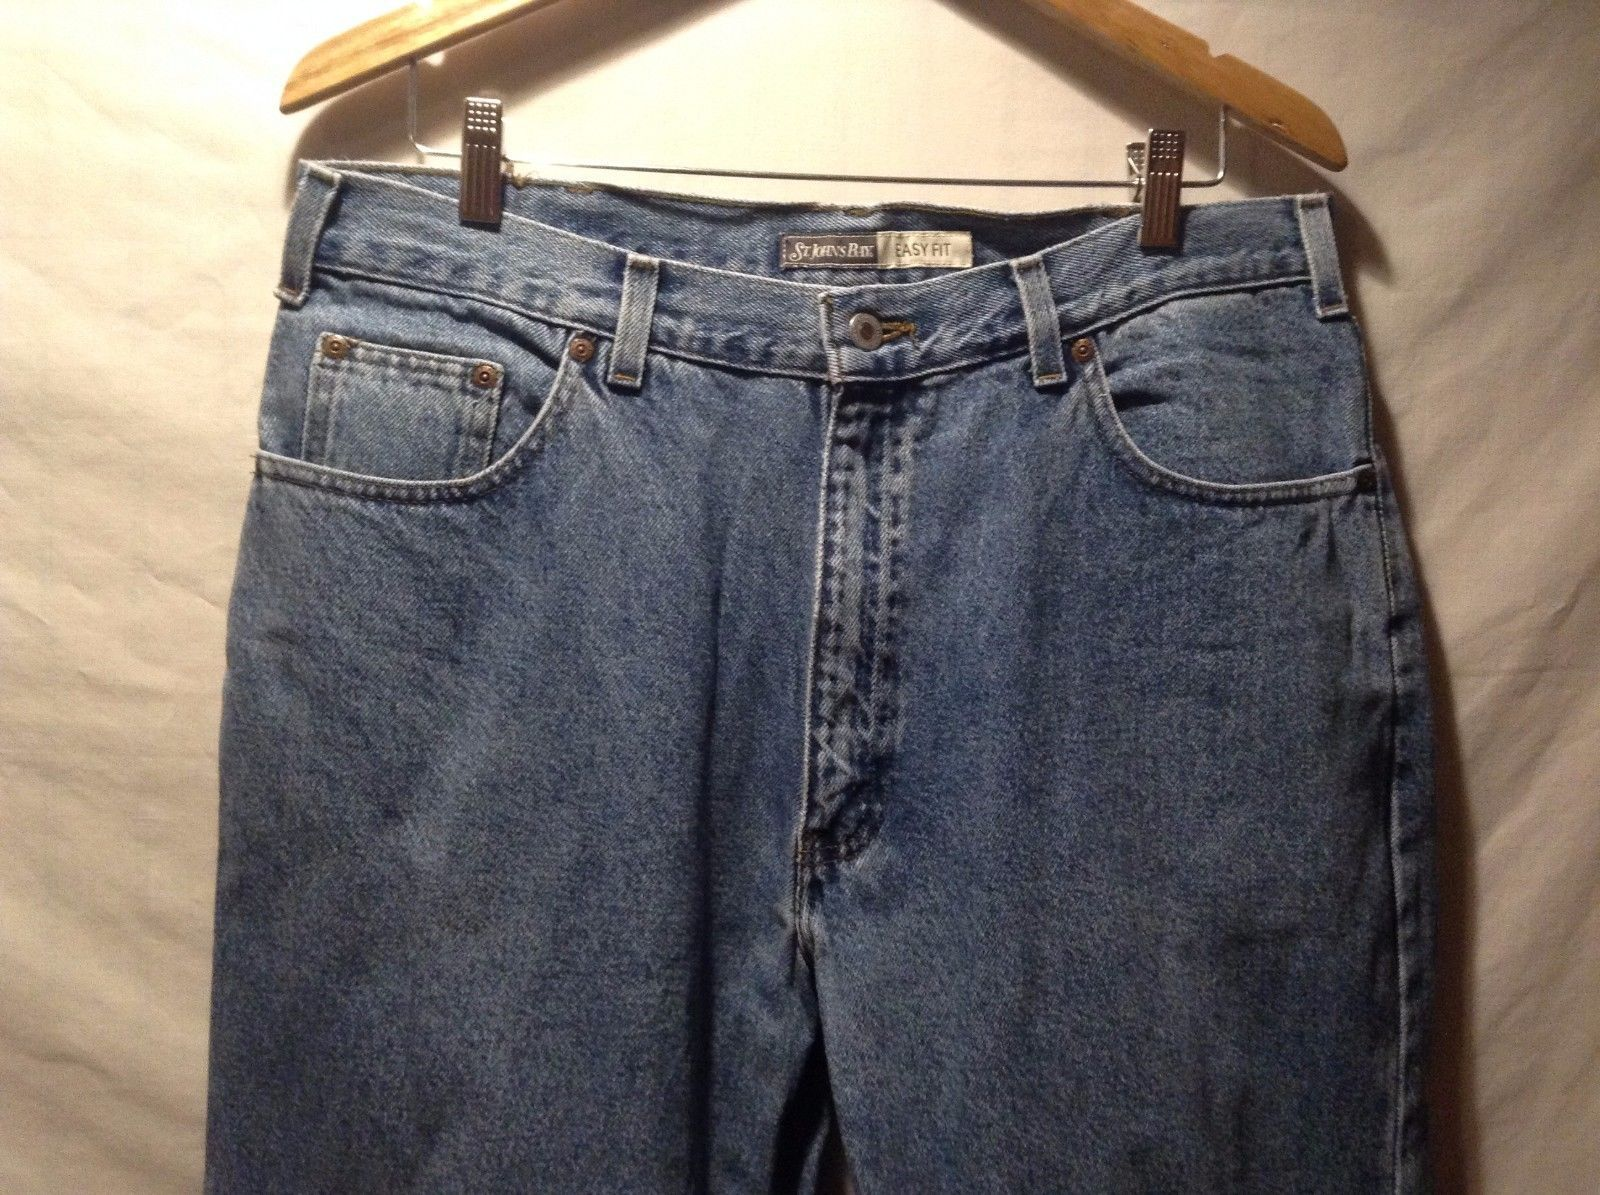 St. John's Bay Blue Jeans Good Used Condition